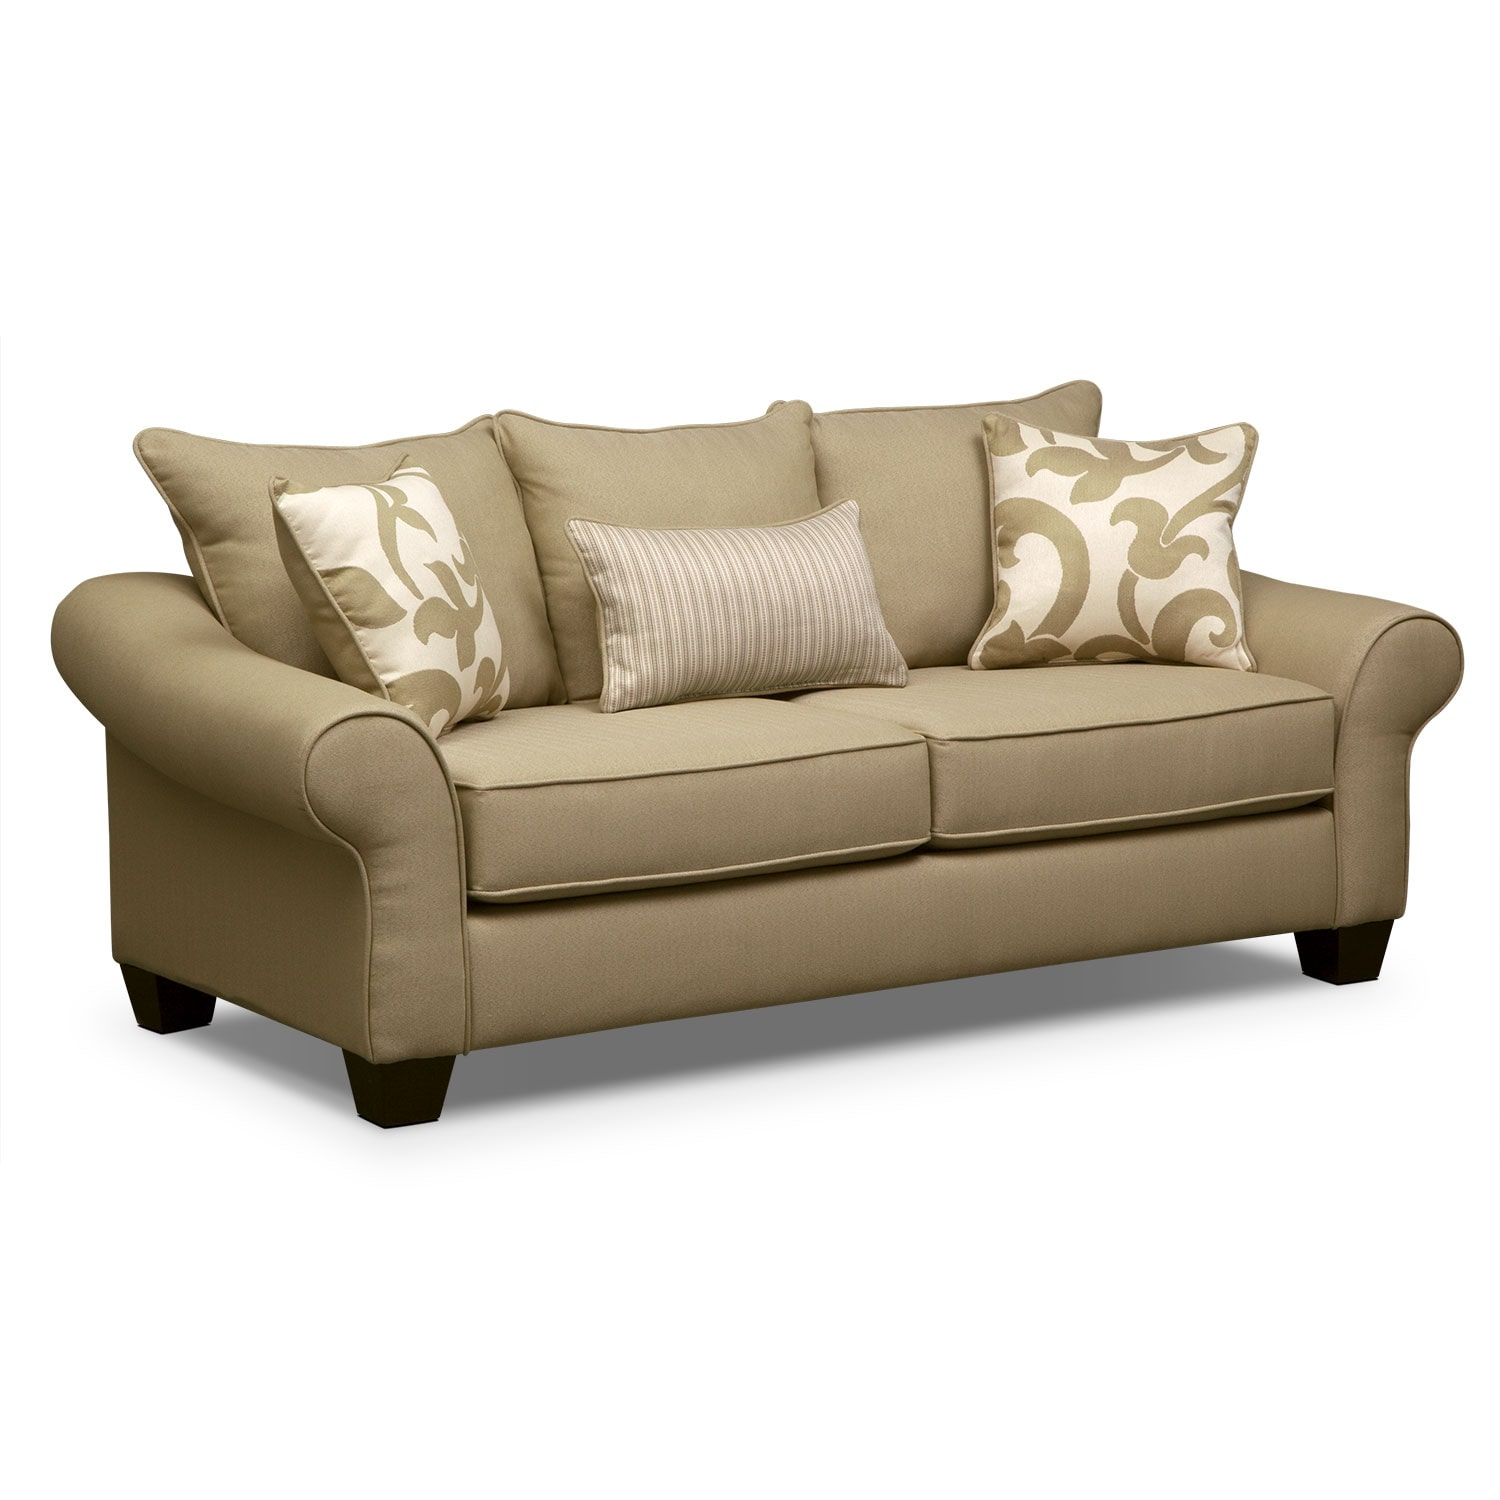 Colette Full Memory Foam Sleeper Sofa - Khaki